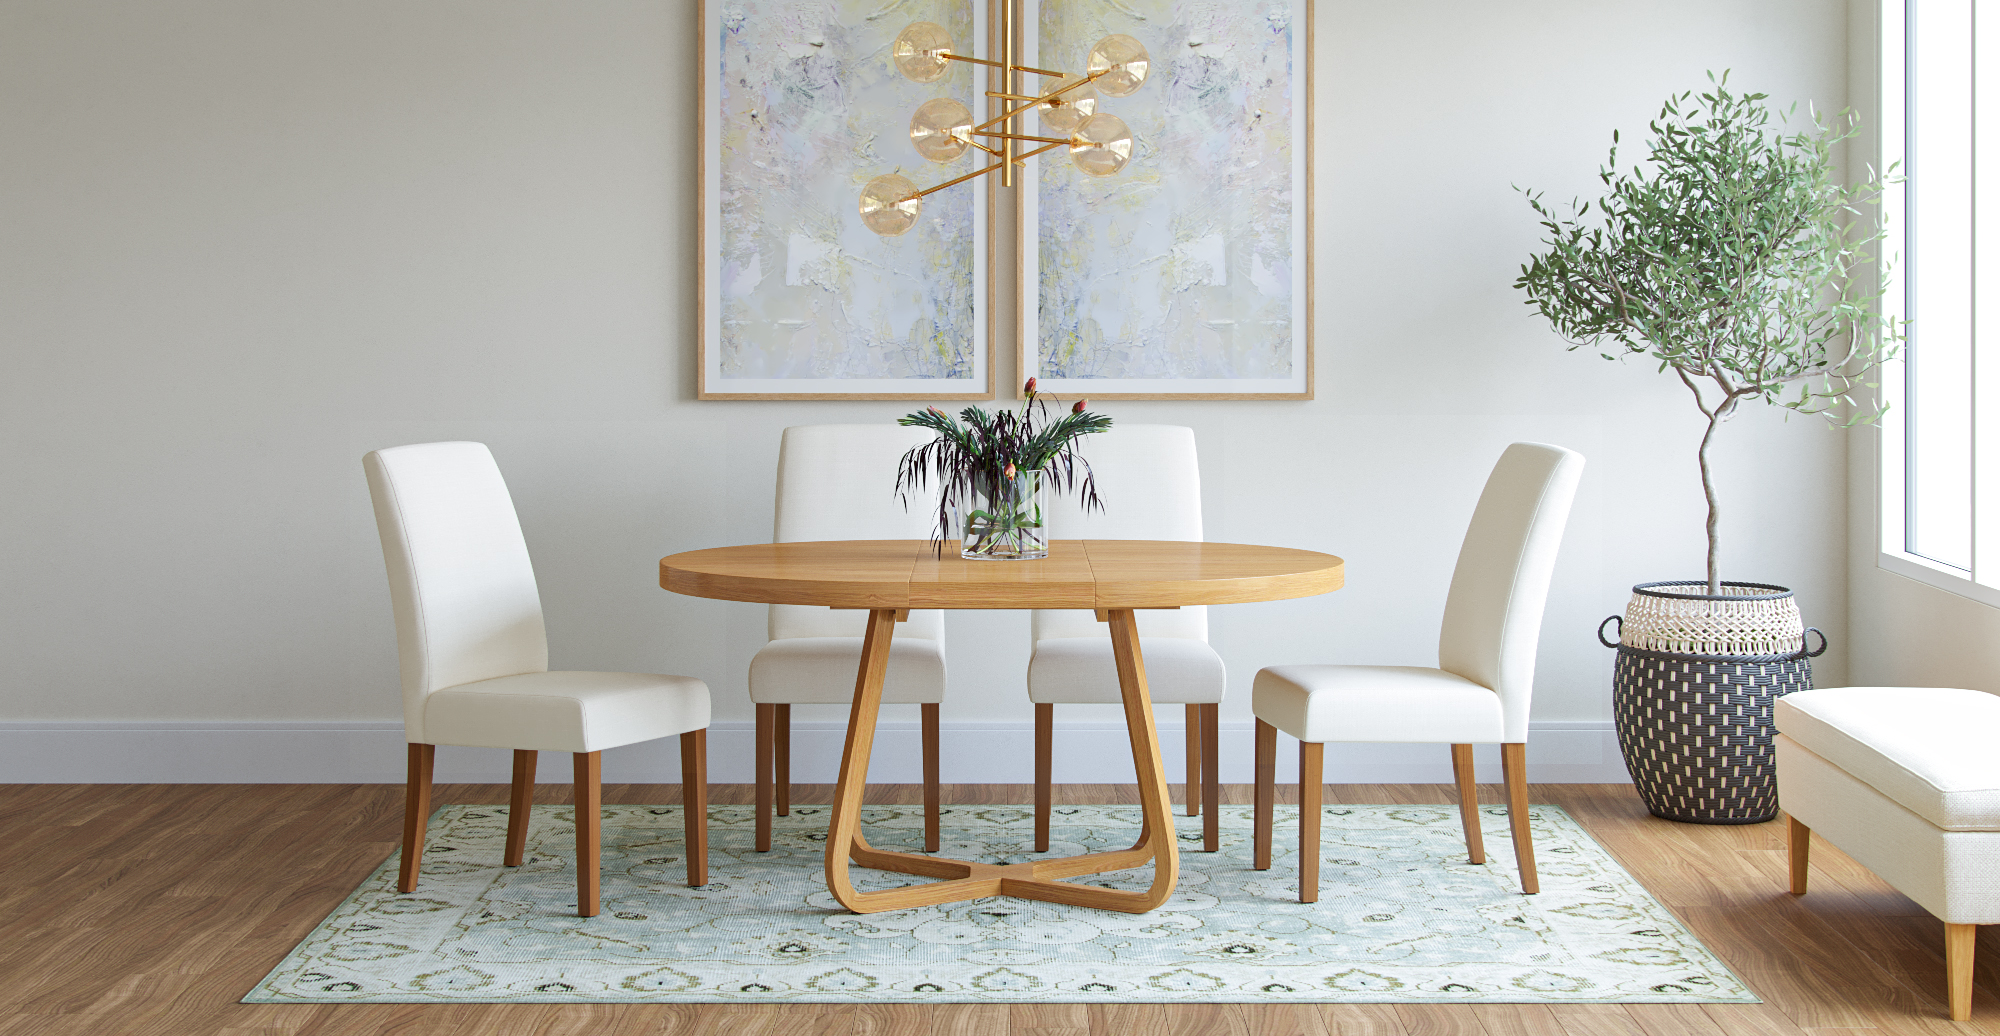 Brosa Romulus Extendable Dining Table styled in Scandinavian dining room